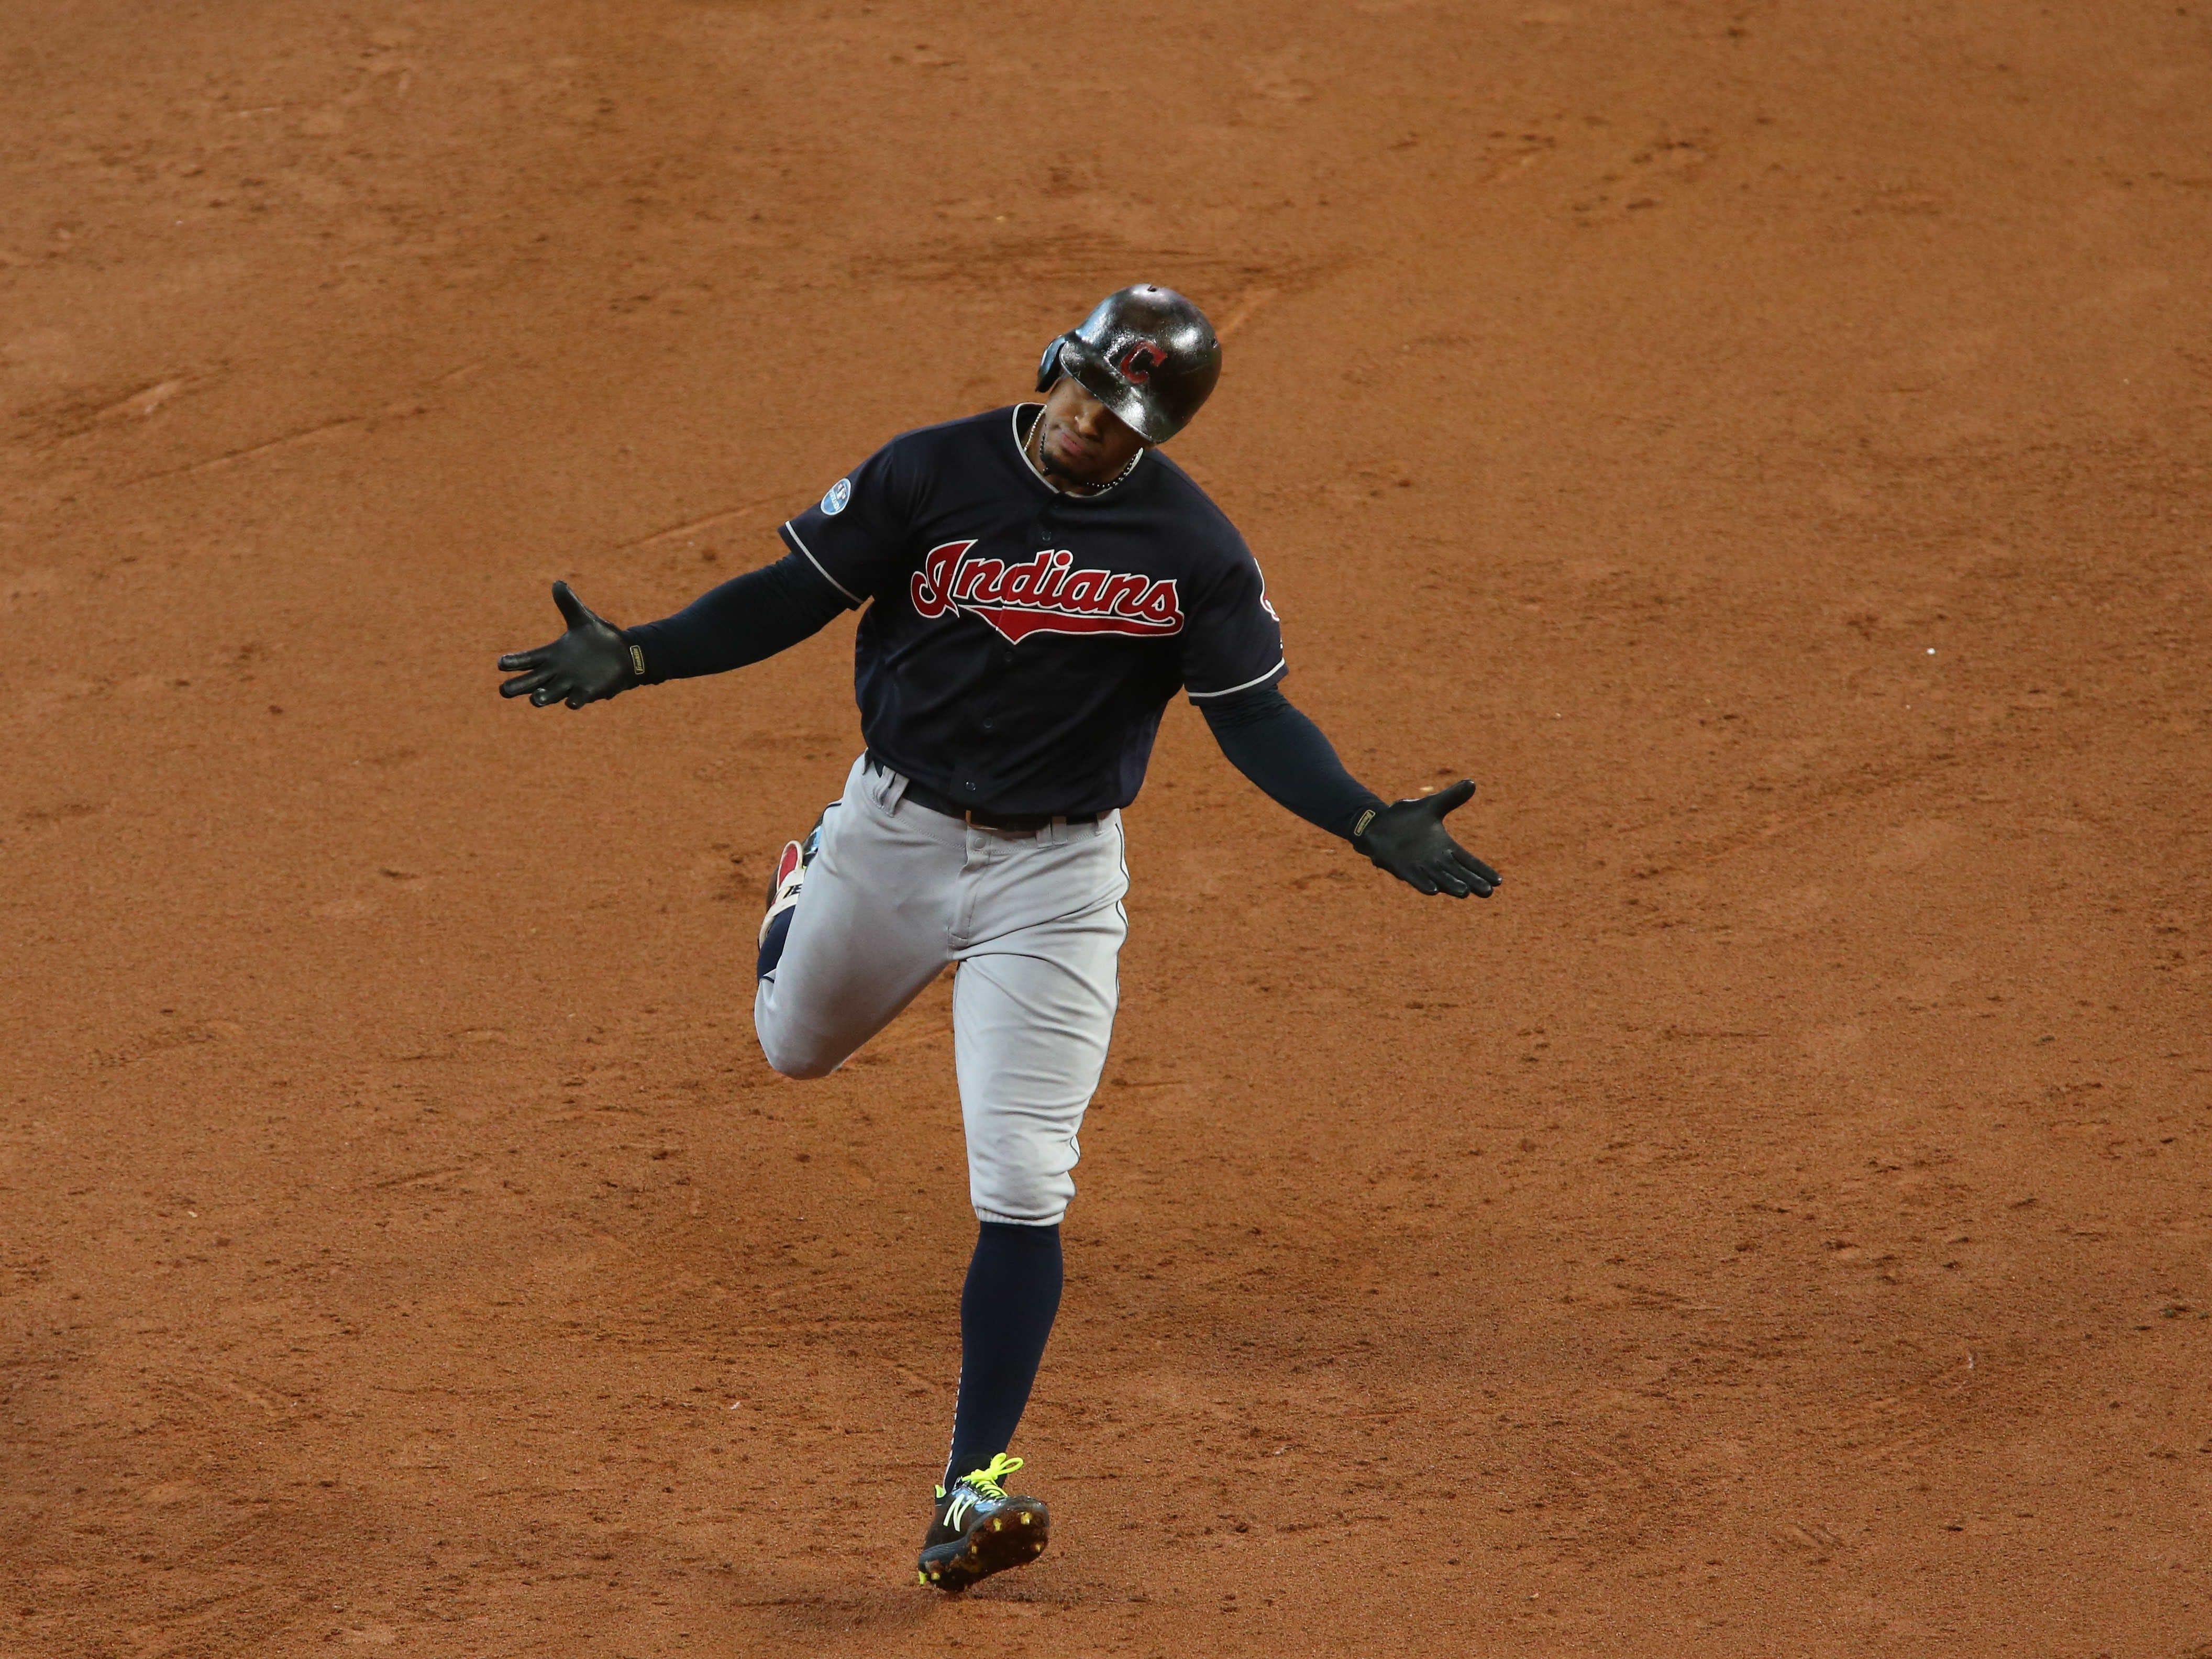 ALDS Game 2: Indians shortstop Francisco Lindor rounds the bases after a solo home run in the third inning.